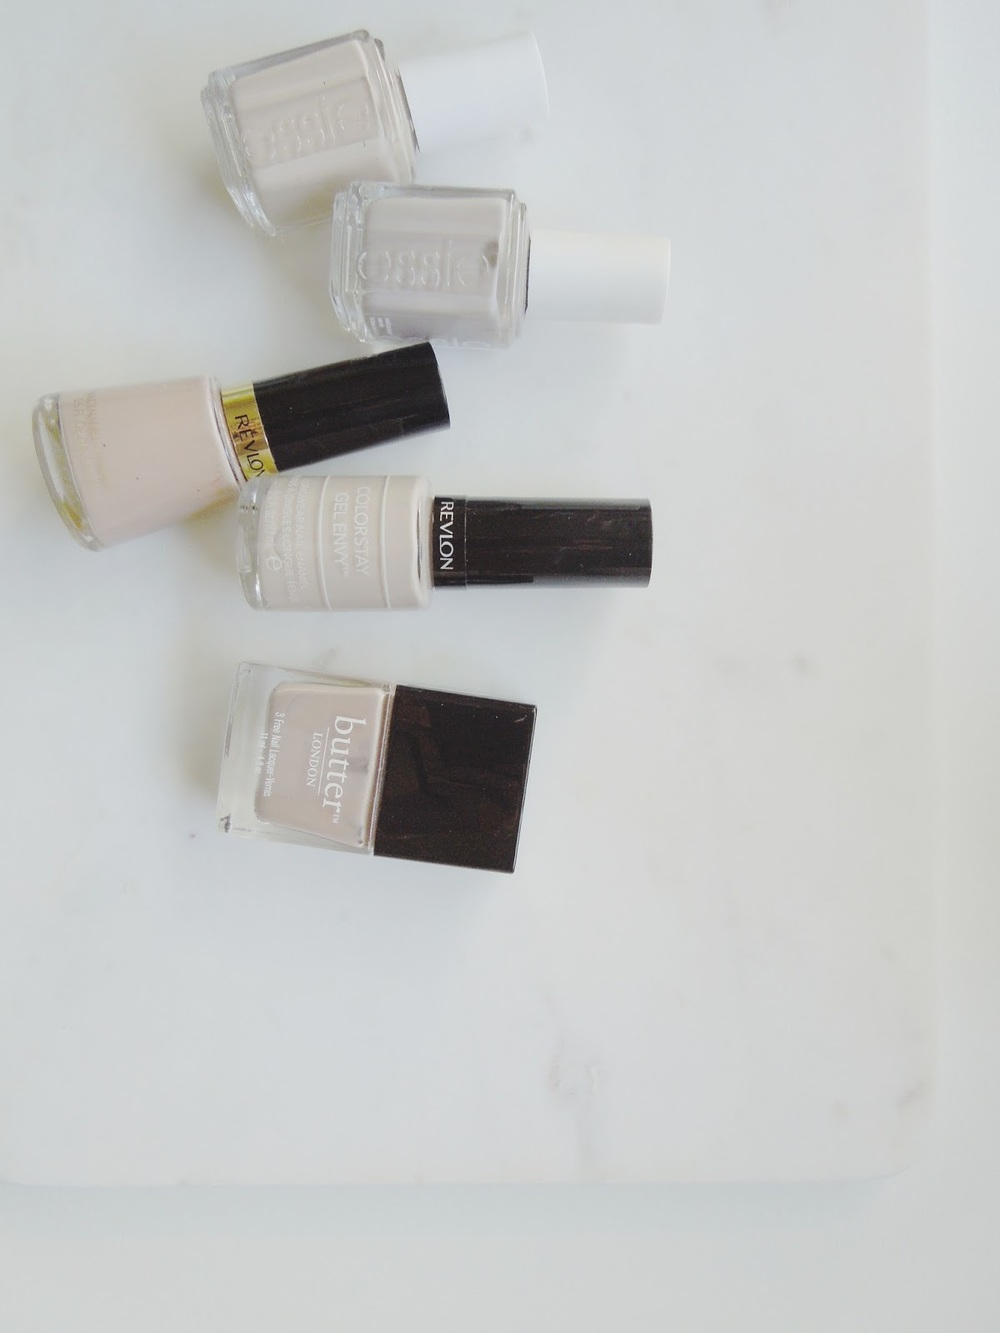 Essie, Revlon, Butter London, Sand Tropez, Master Plan, Grey Suede, Checkmate, Yummy Mummy